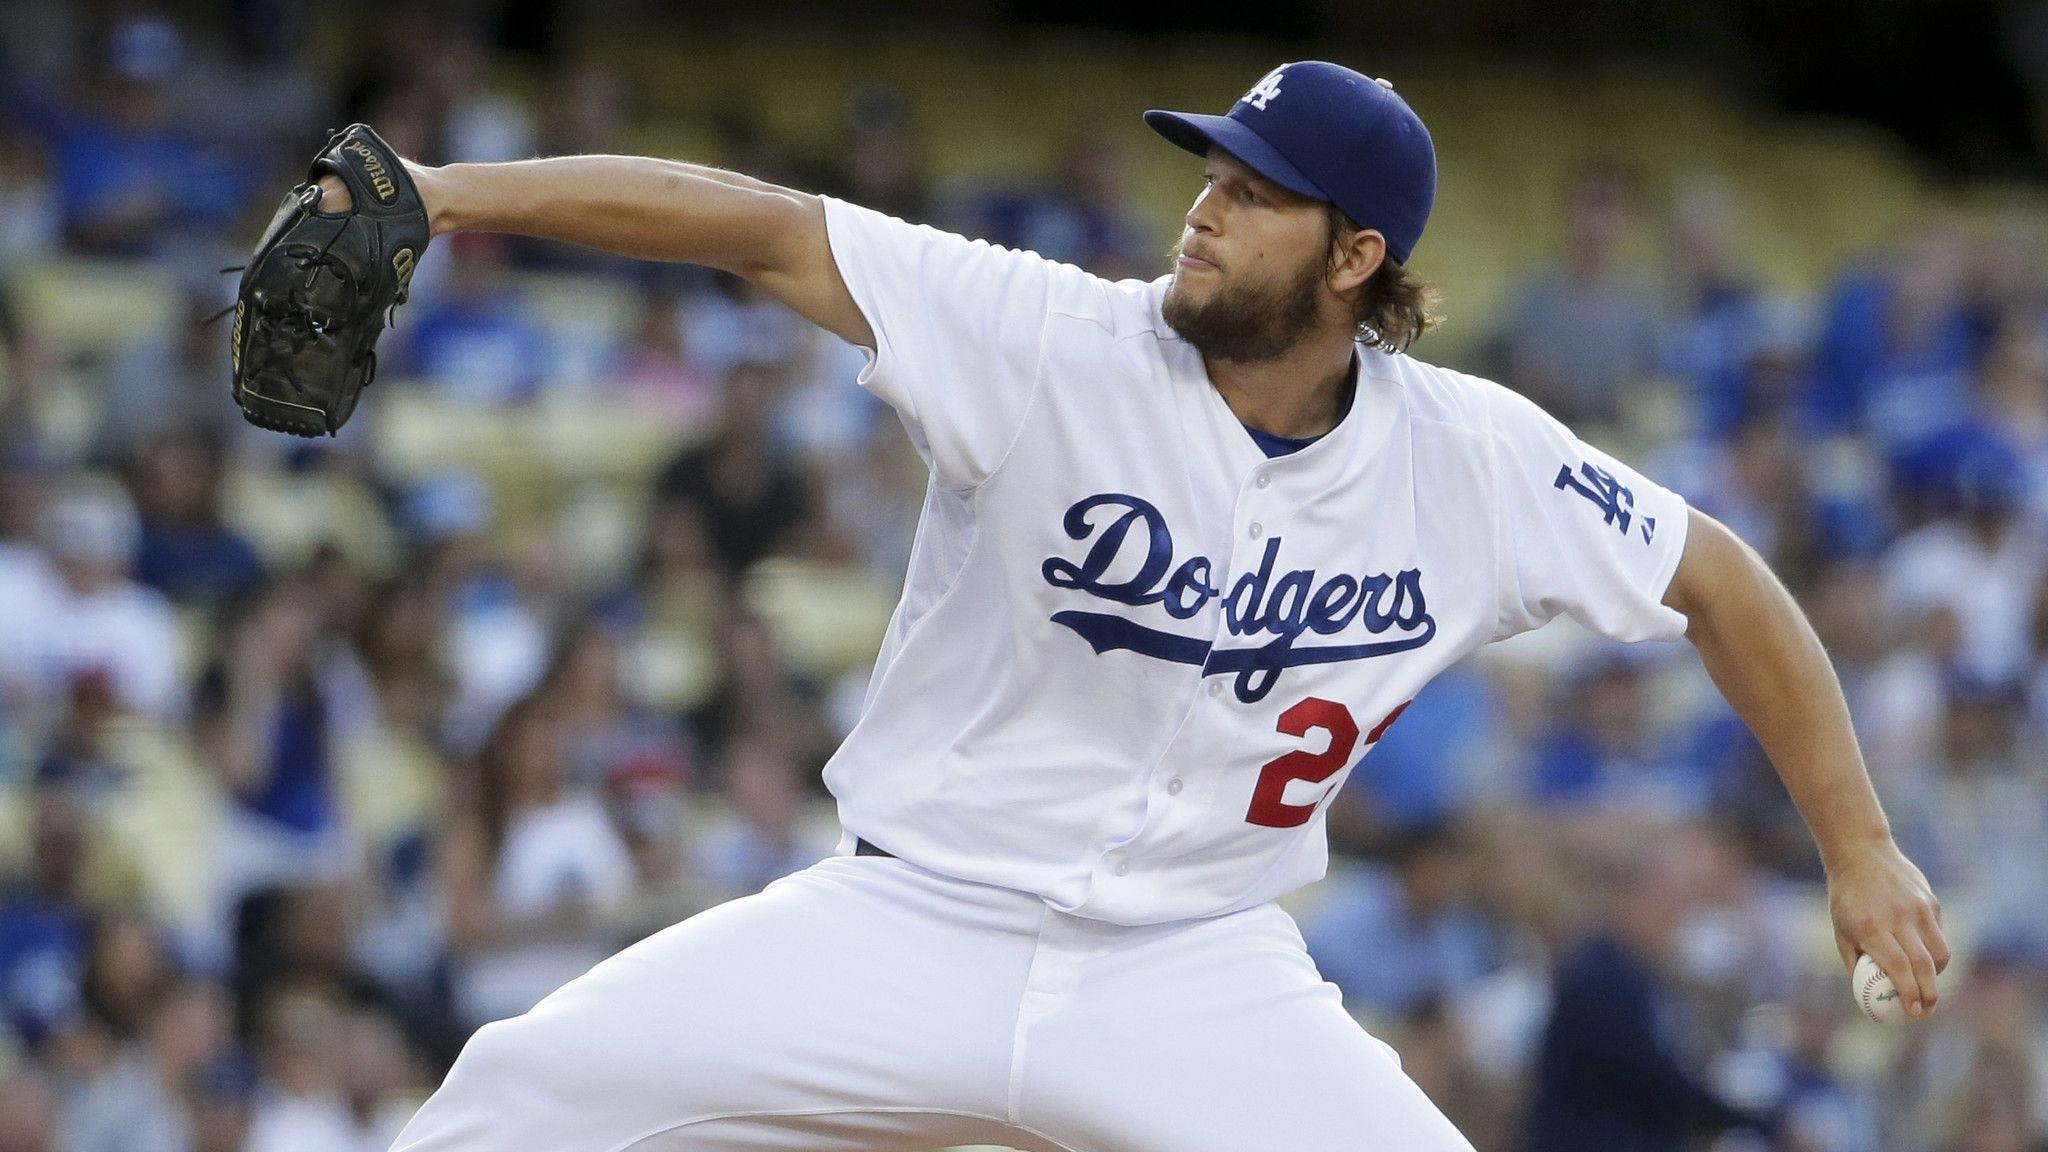 Dodgers' Clayton Kershaw will start against Nationals on Friday